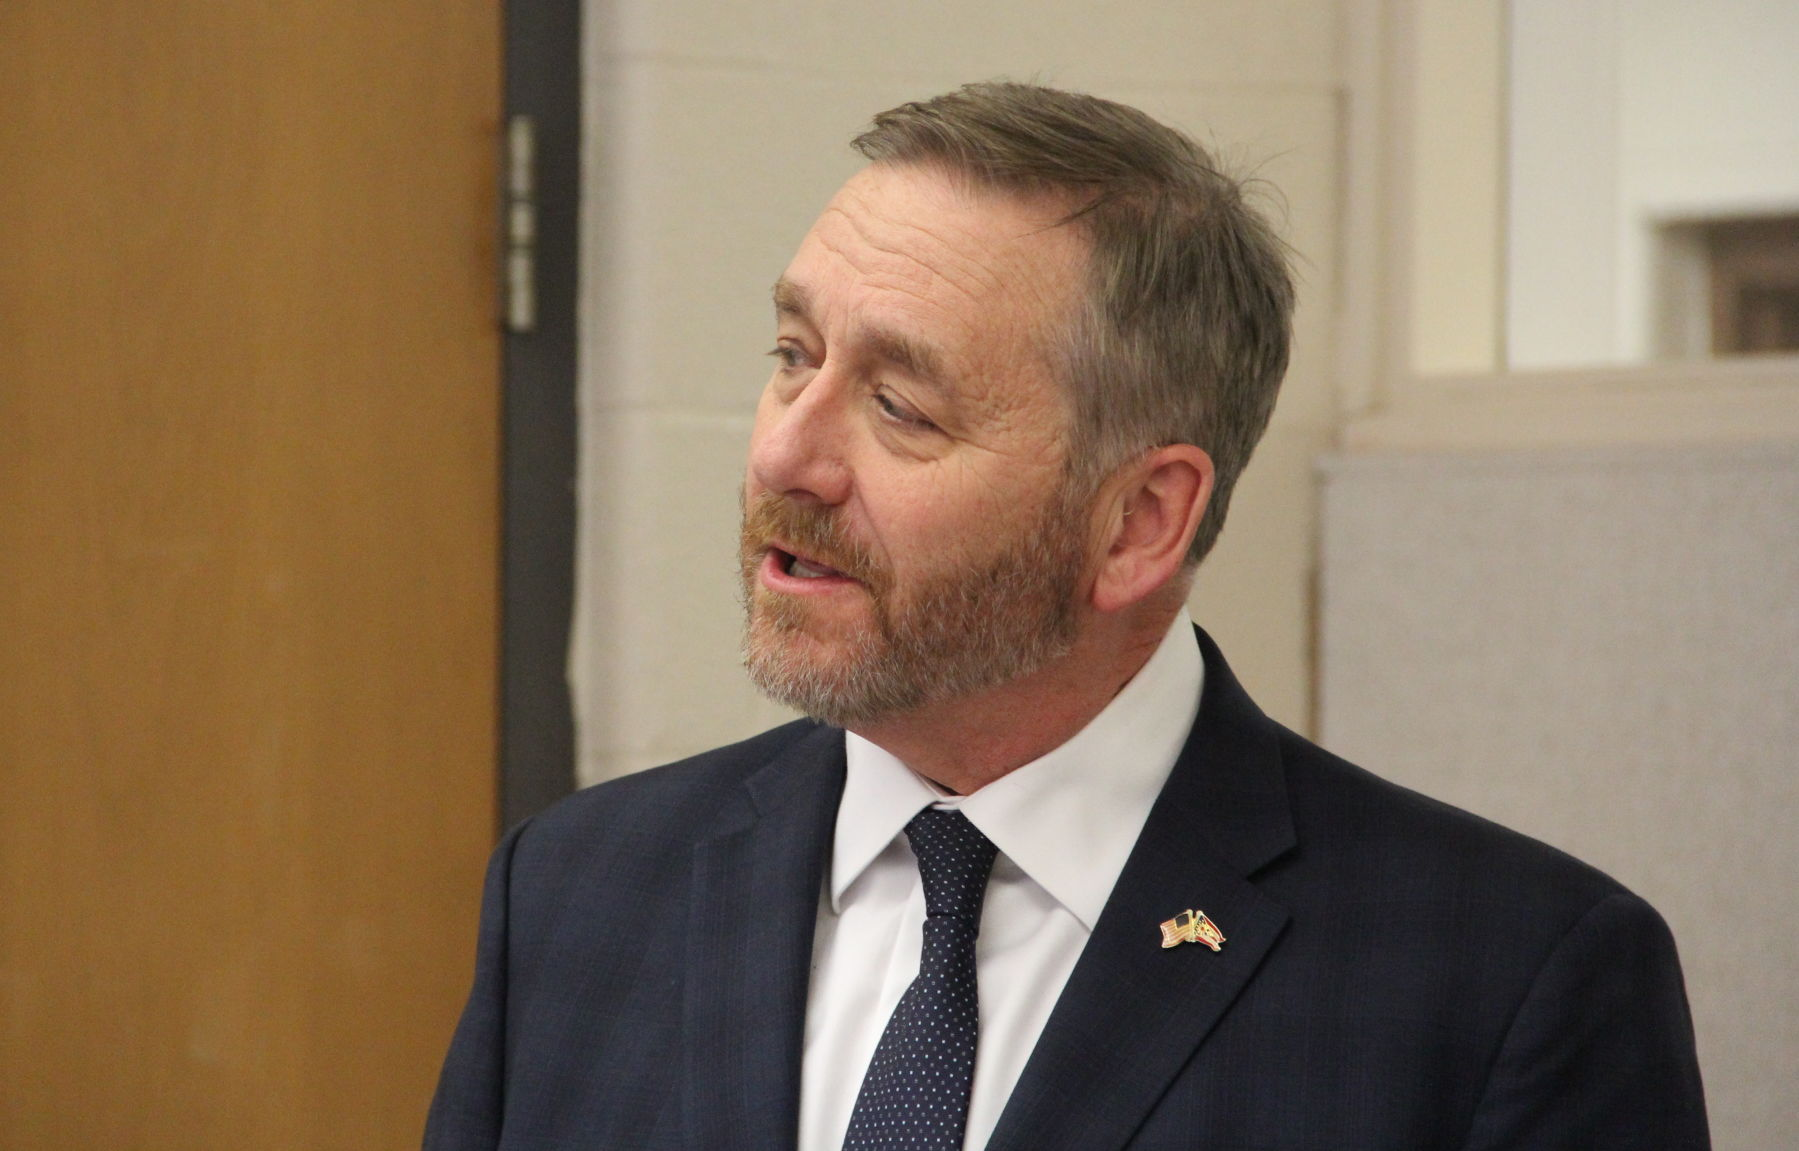 Ohio Attorney General calls for removal of Pike County Sheriff